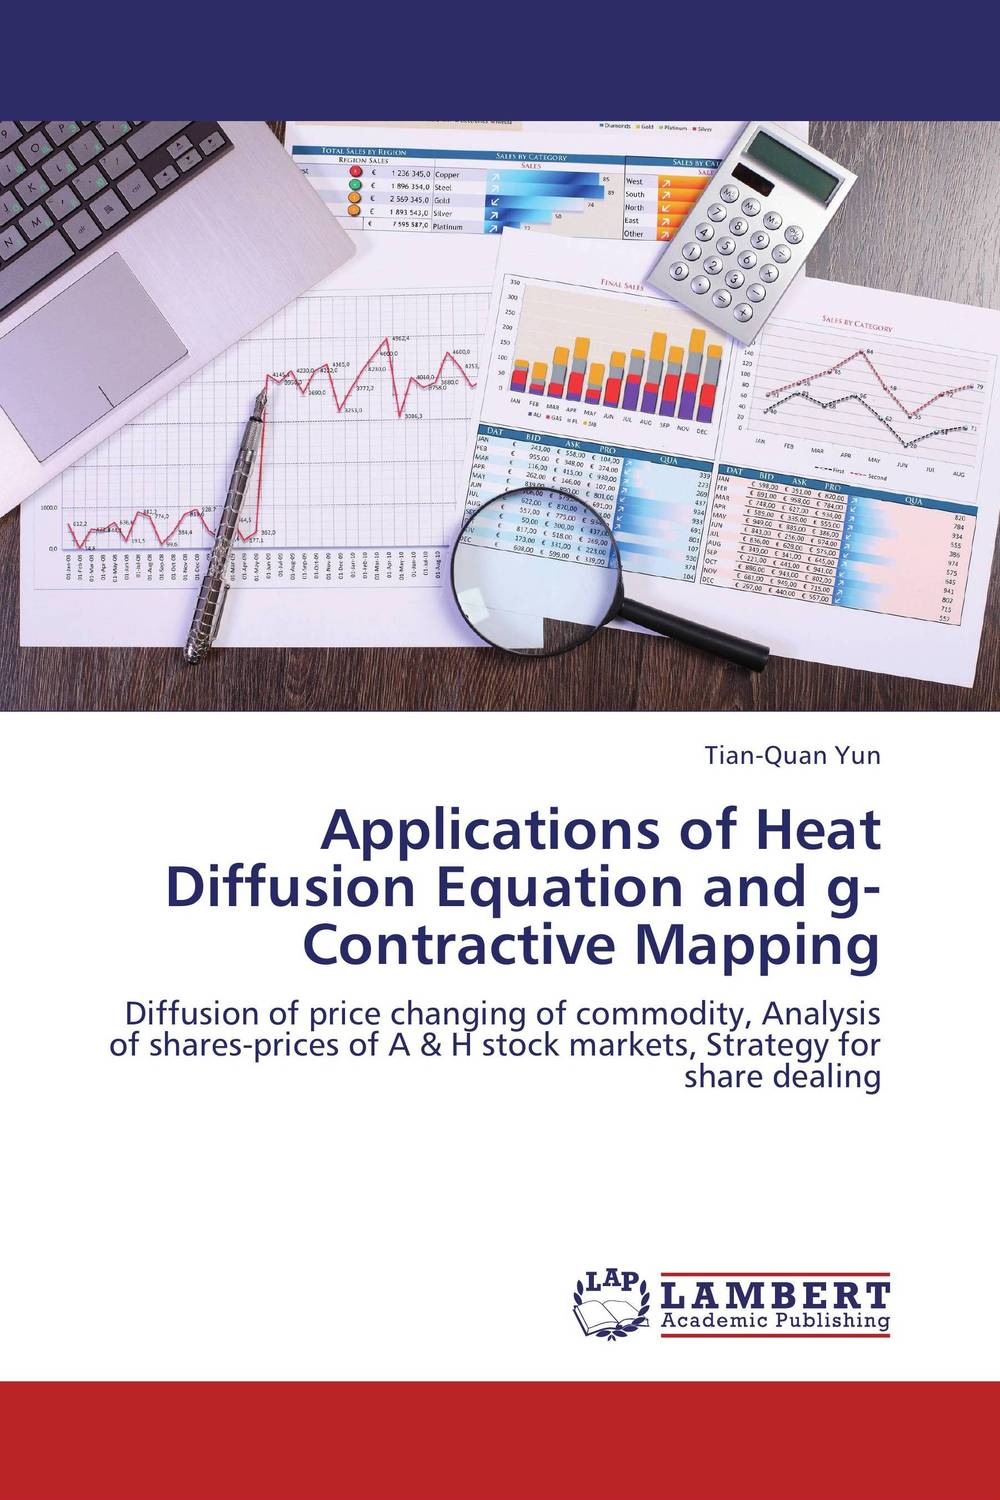 Applications of Heat Diffusion Equation and g-Contractive Mapping analytical and numerical approximation solution of bio heat equation